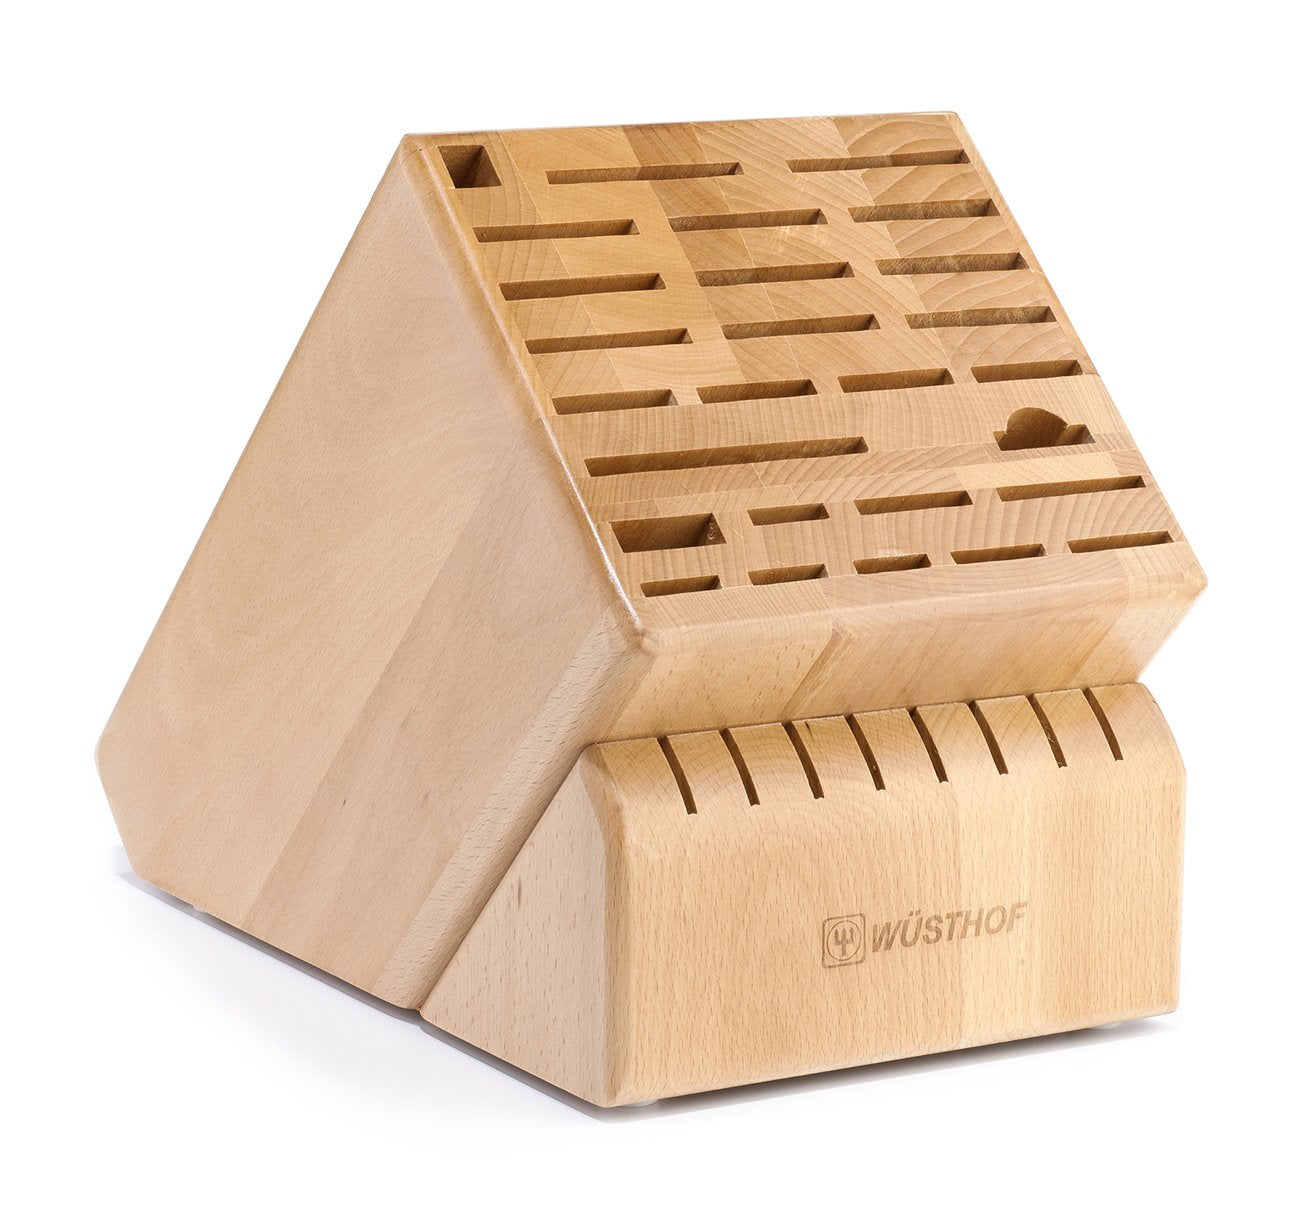 35 Slot Colossus Knife Block in Natural Beech - 7235-1